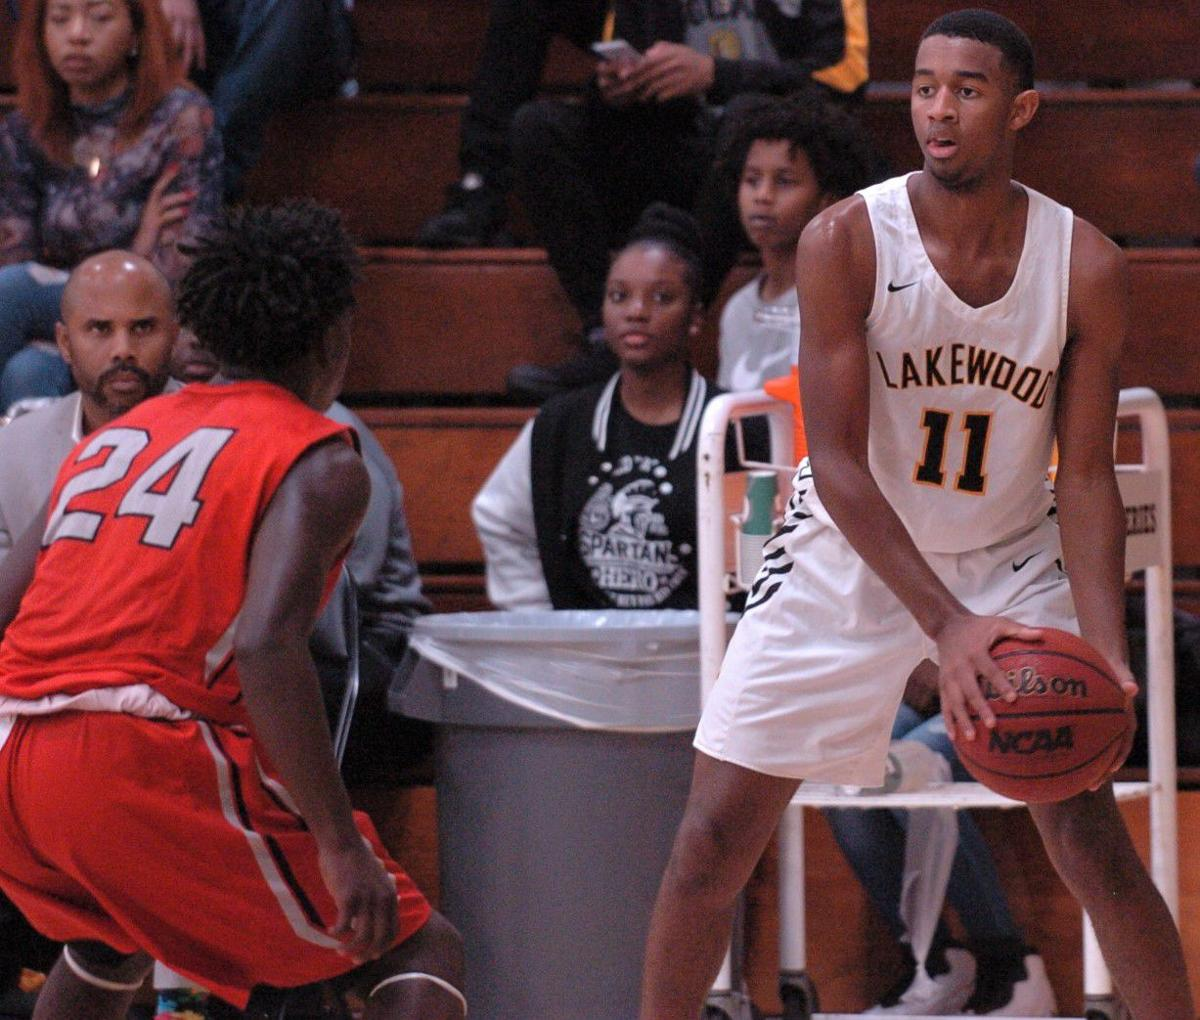 B-BALL: Lakewood holds off Clearwater